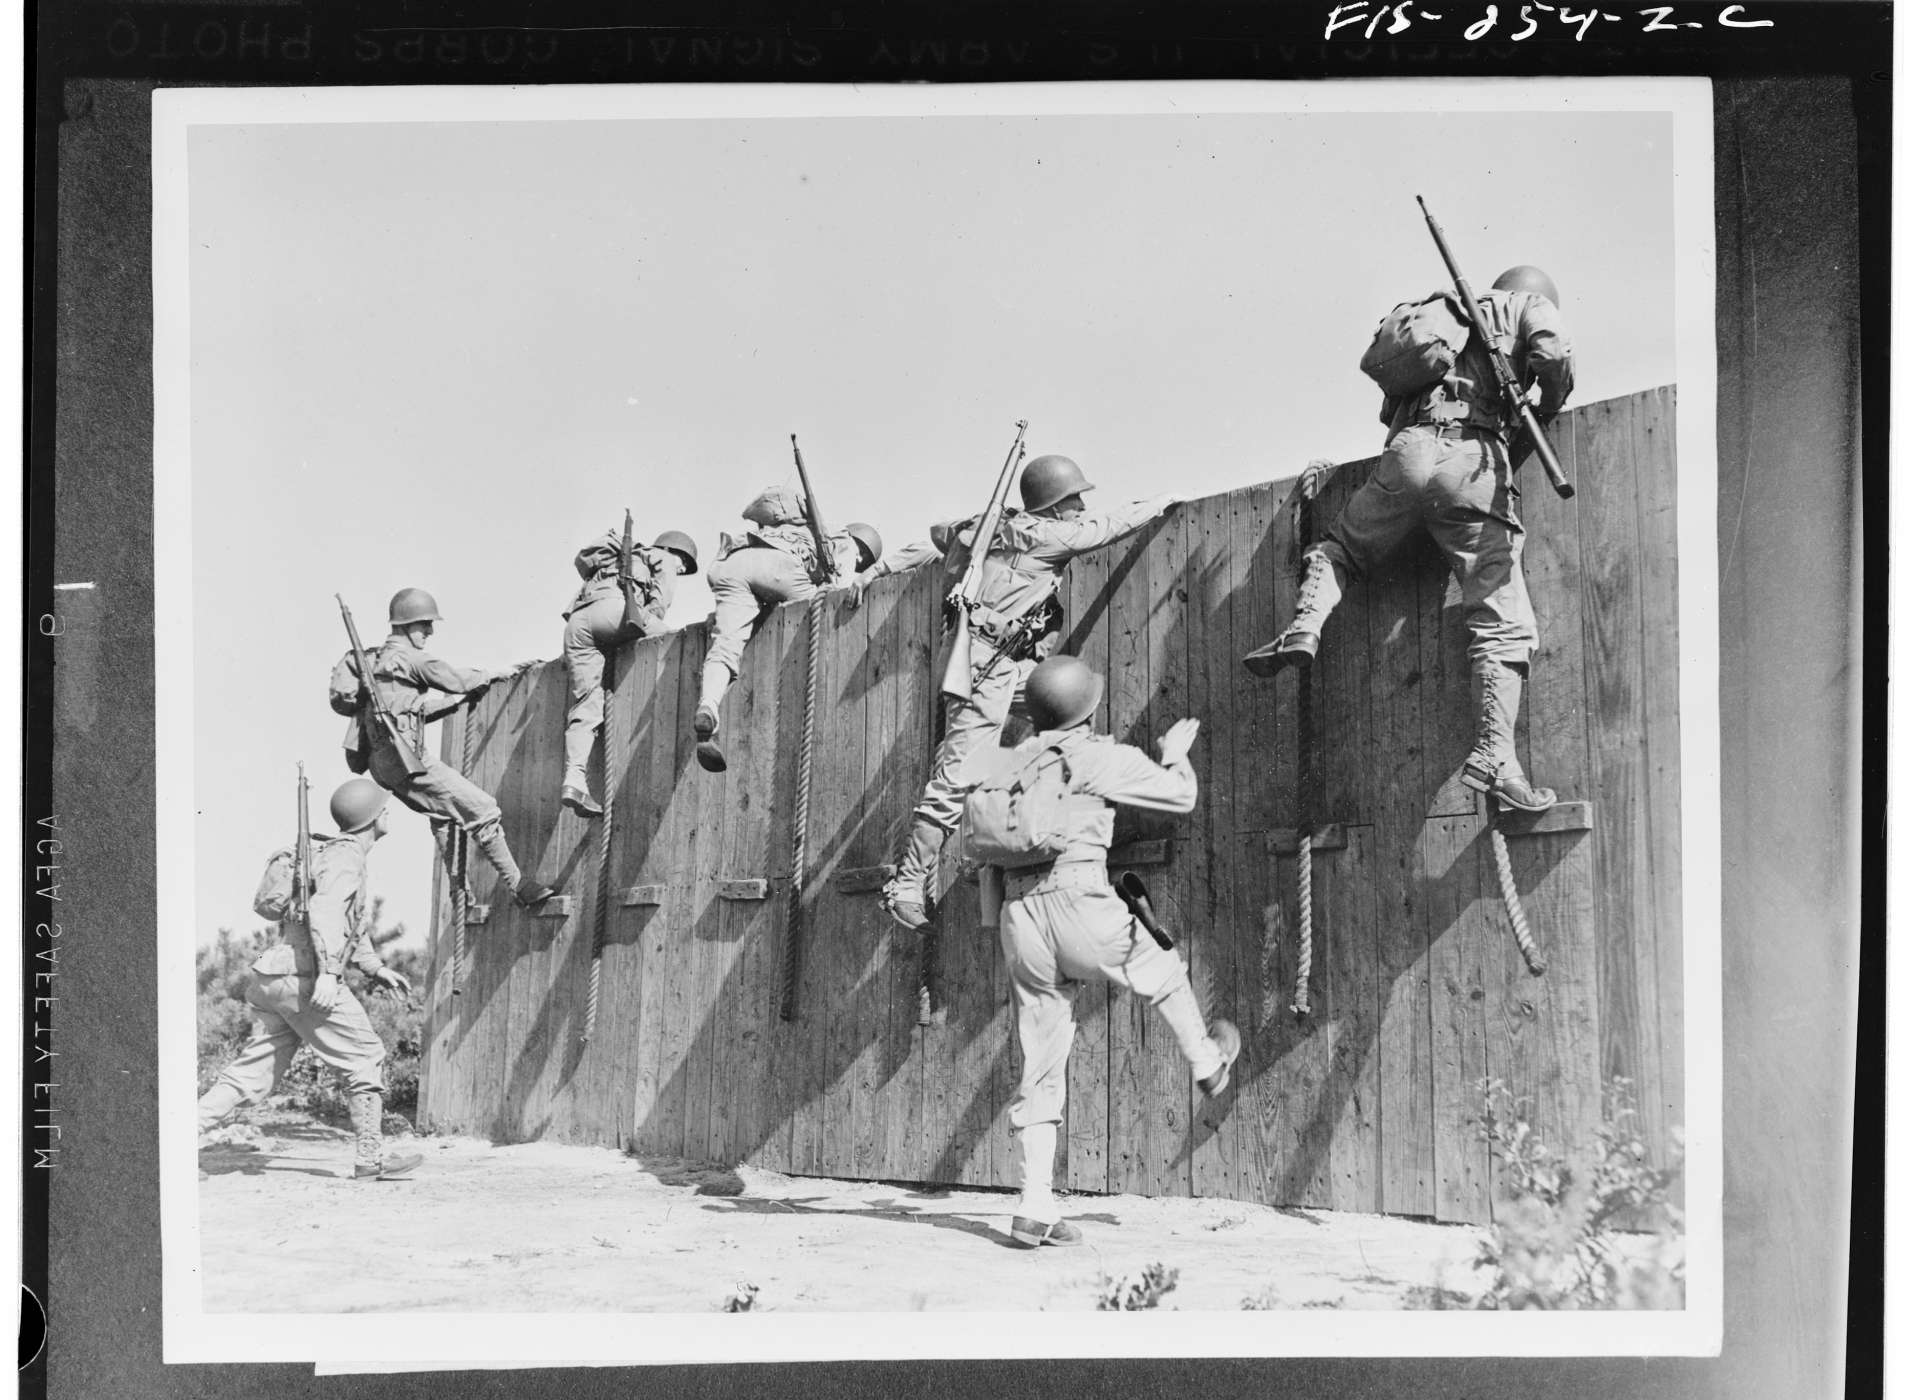 Training the American GI | The National WWII Museum | New